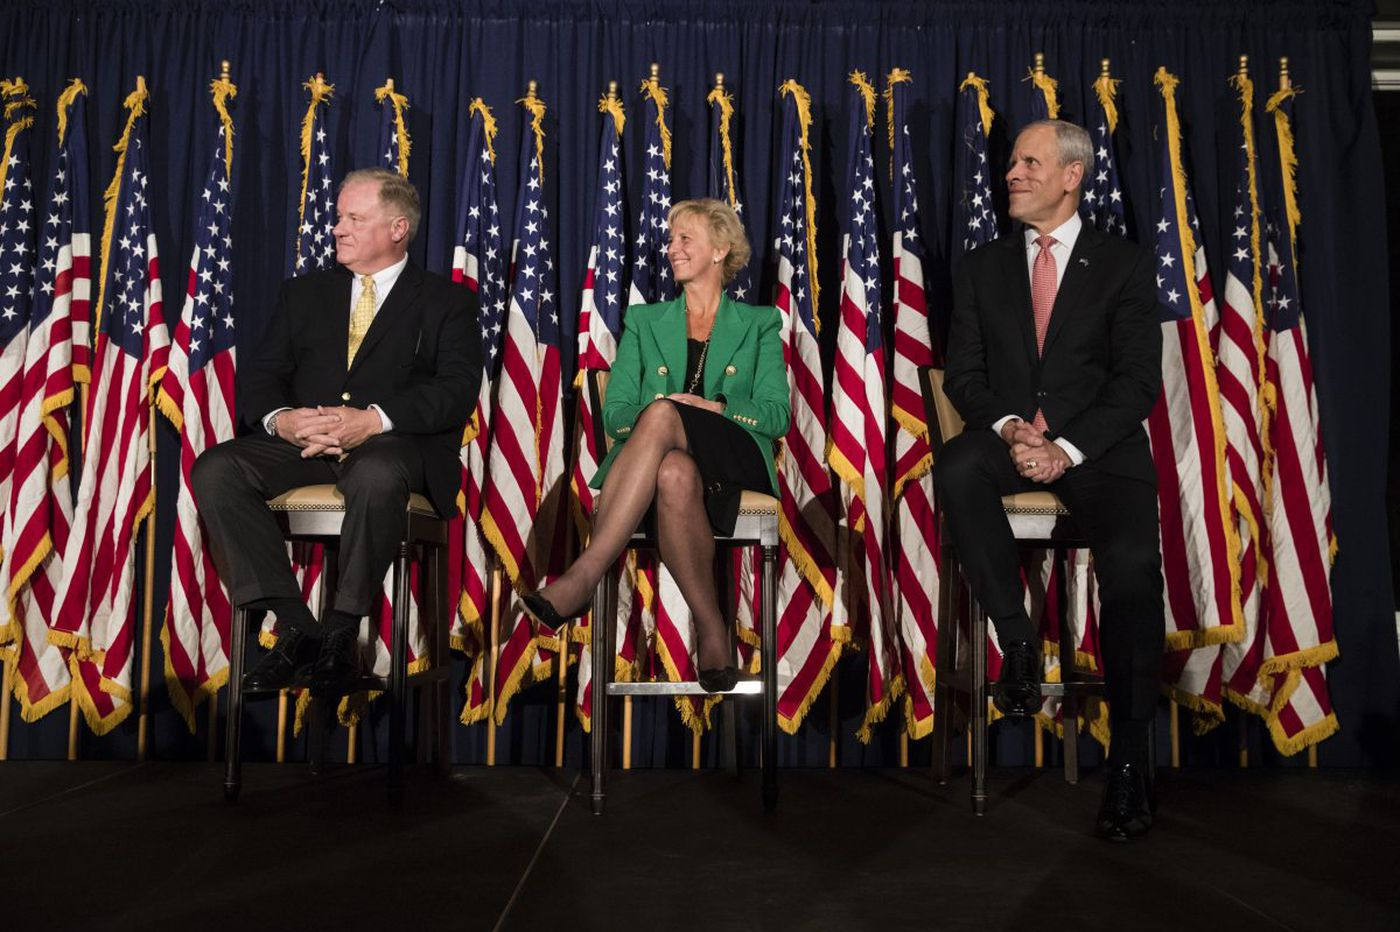 It's not the Waldorf, but same politicking at Pennsylvania Society